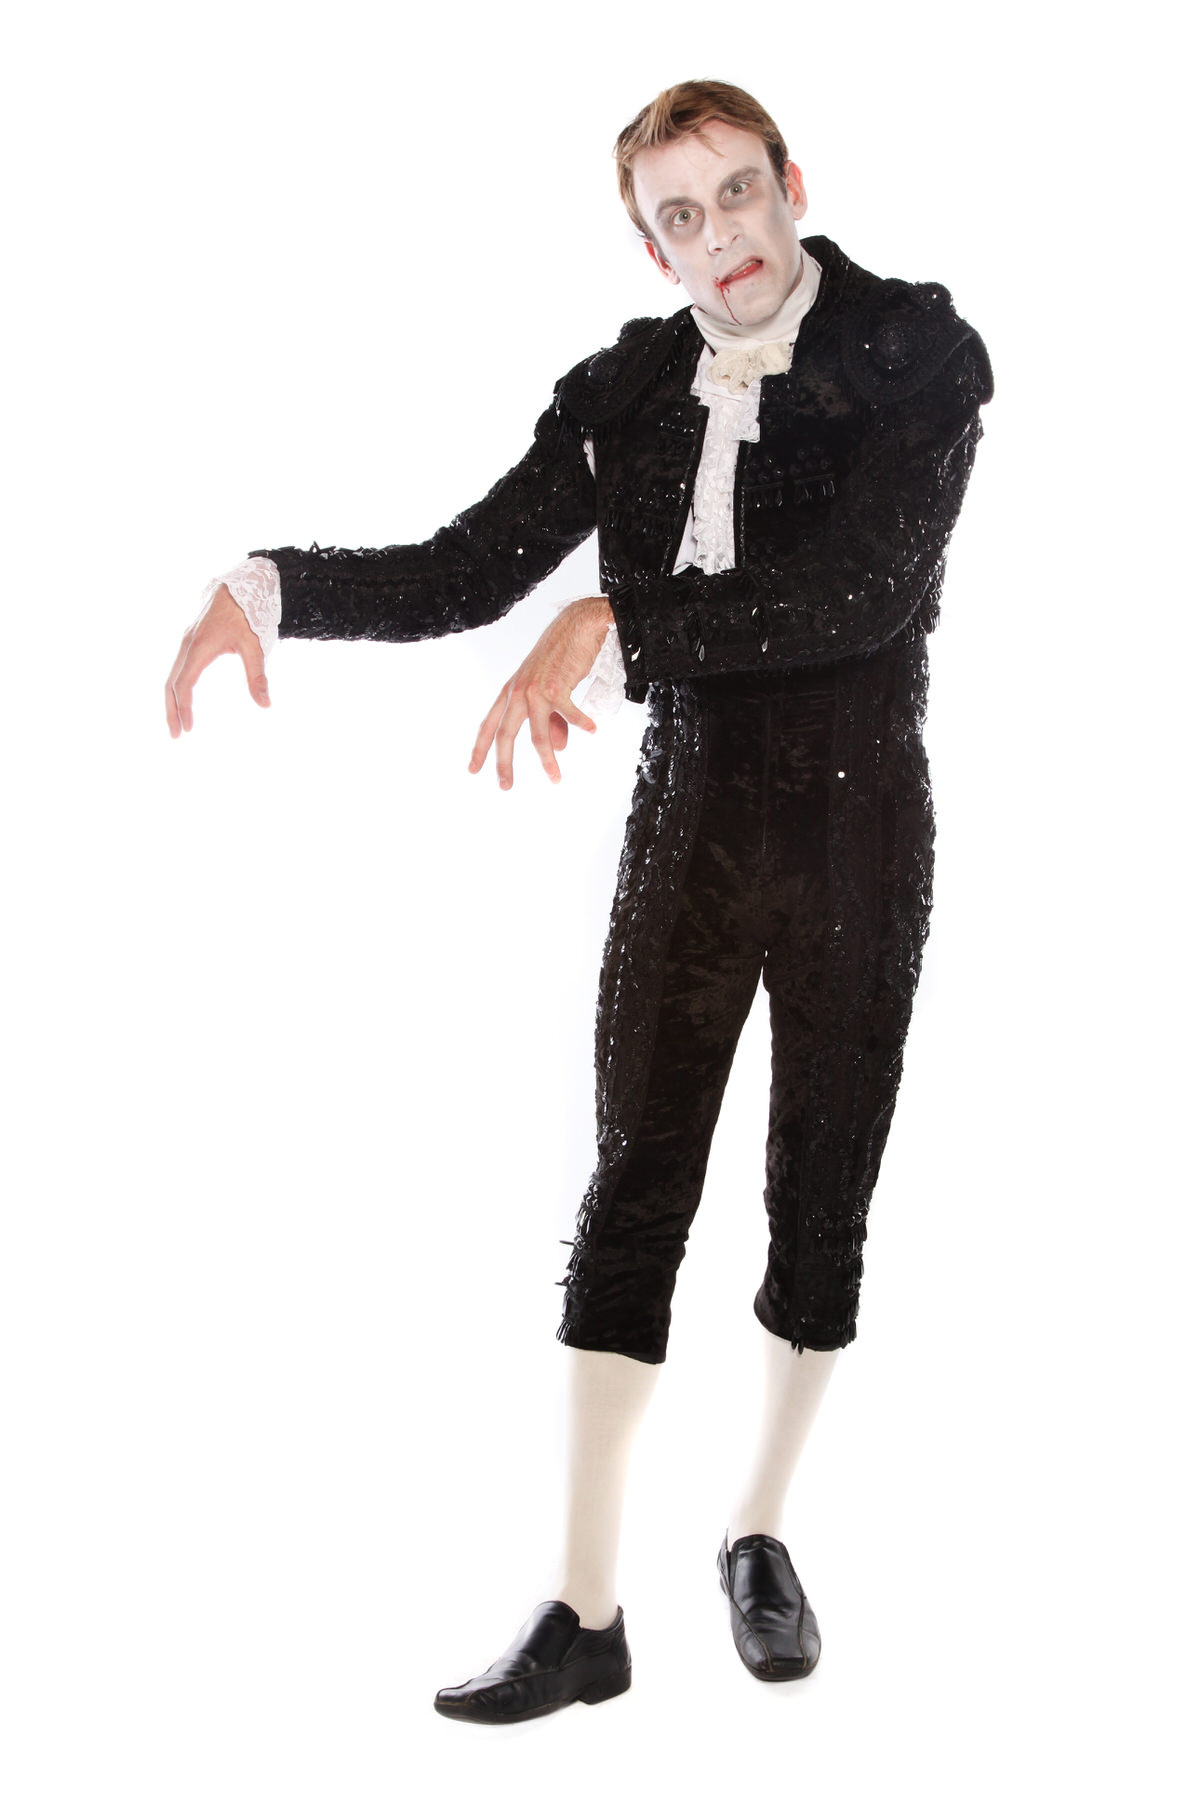 DEAD MATADOR COSTUME WITH BOLERO JACKET